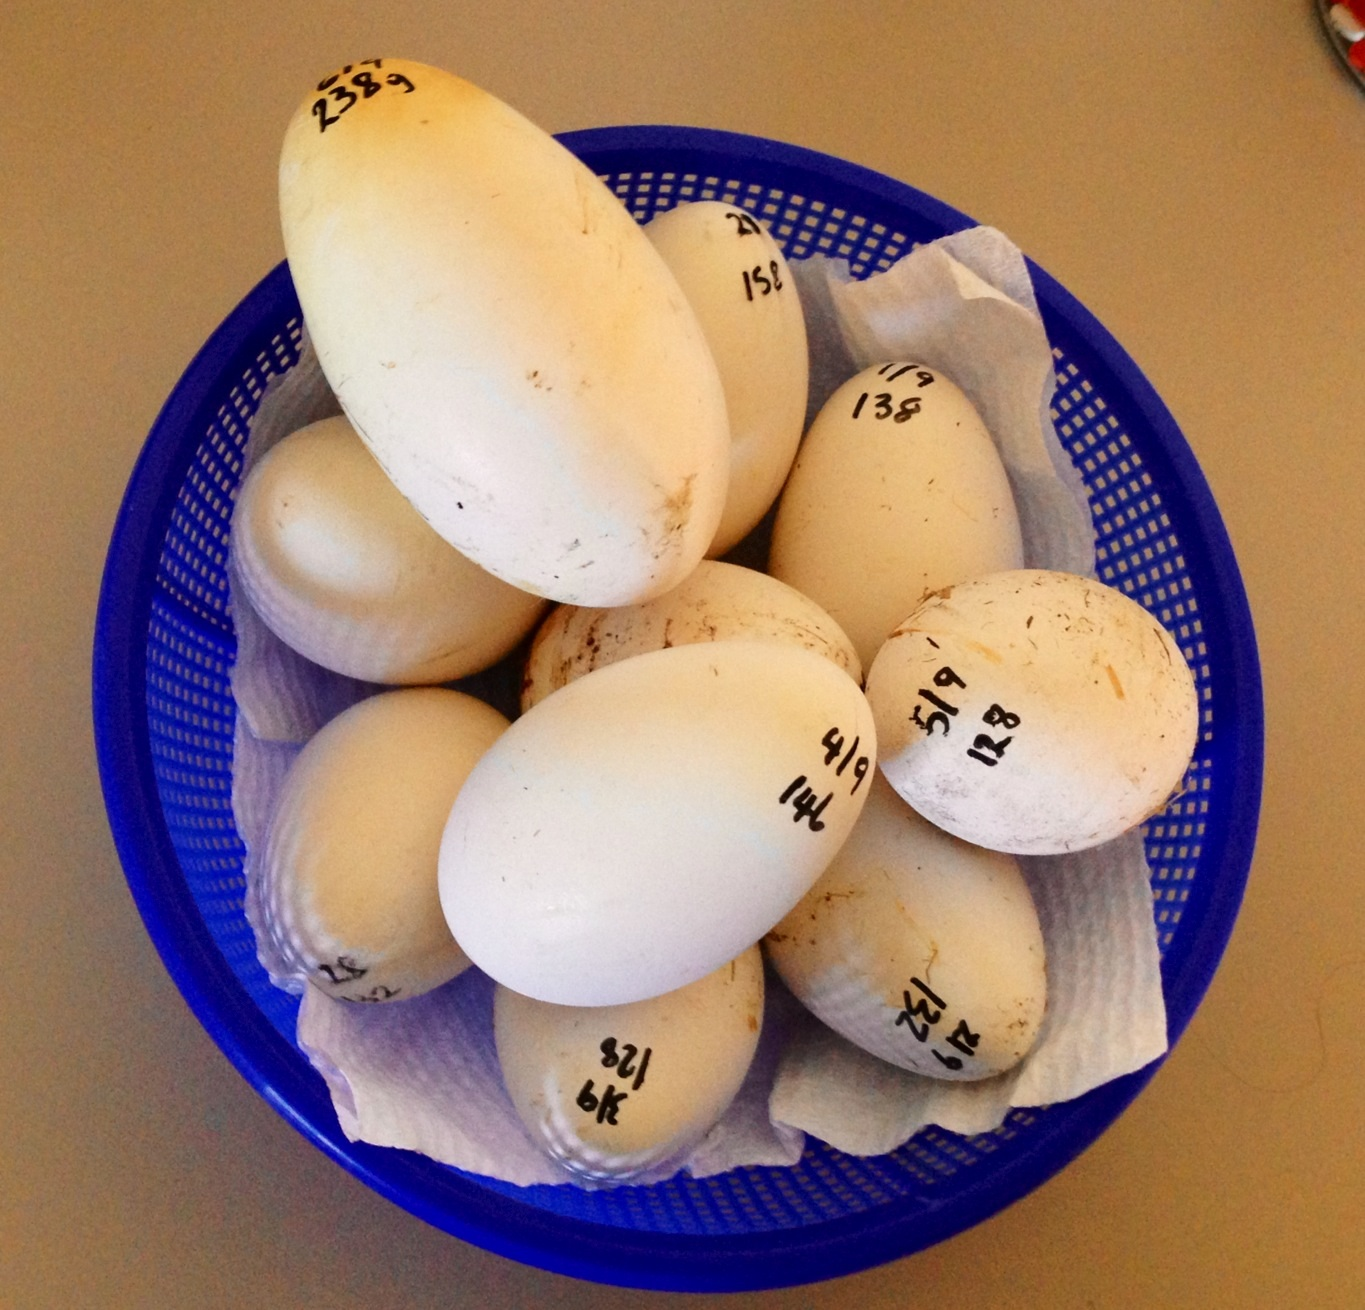 this weeks batch of eggs from my girls with peppers whopper 238